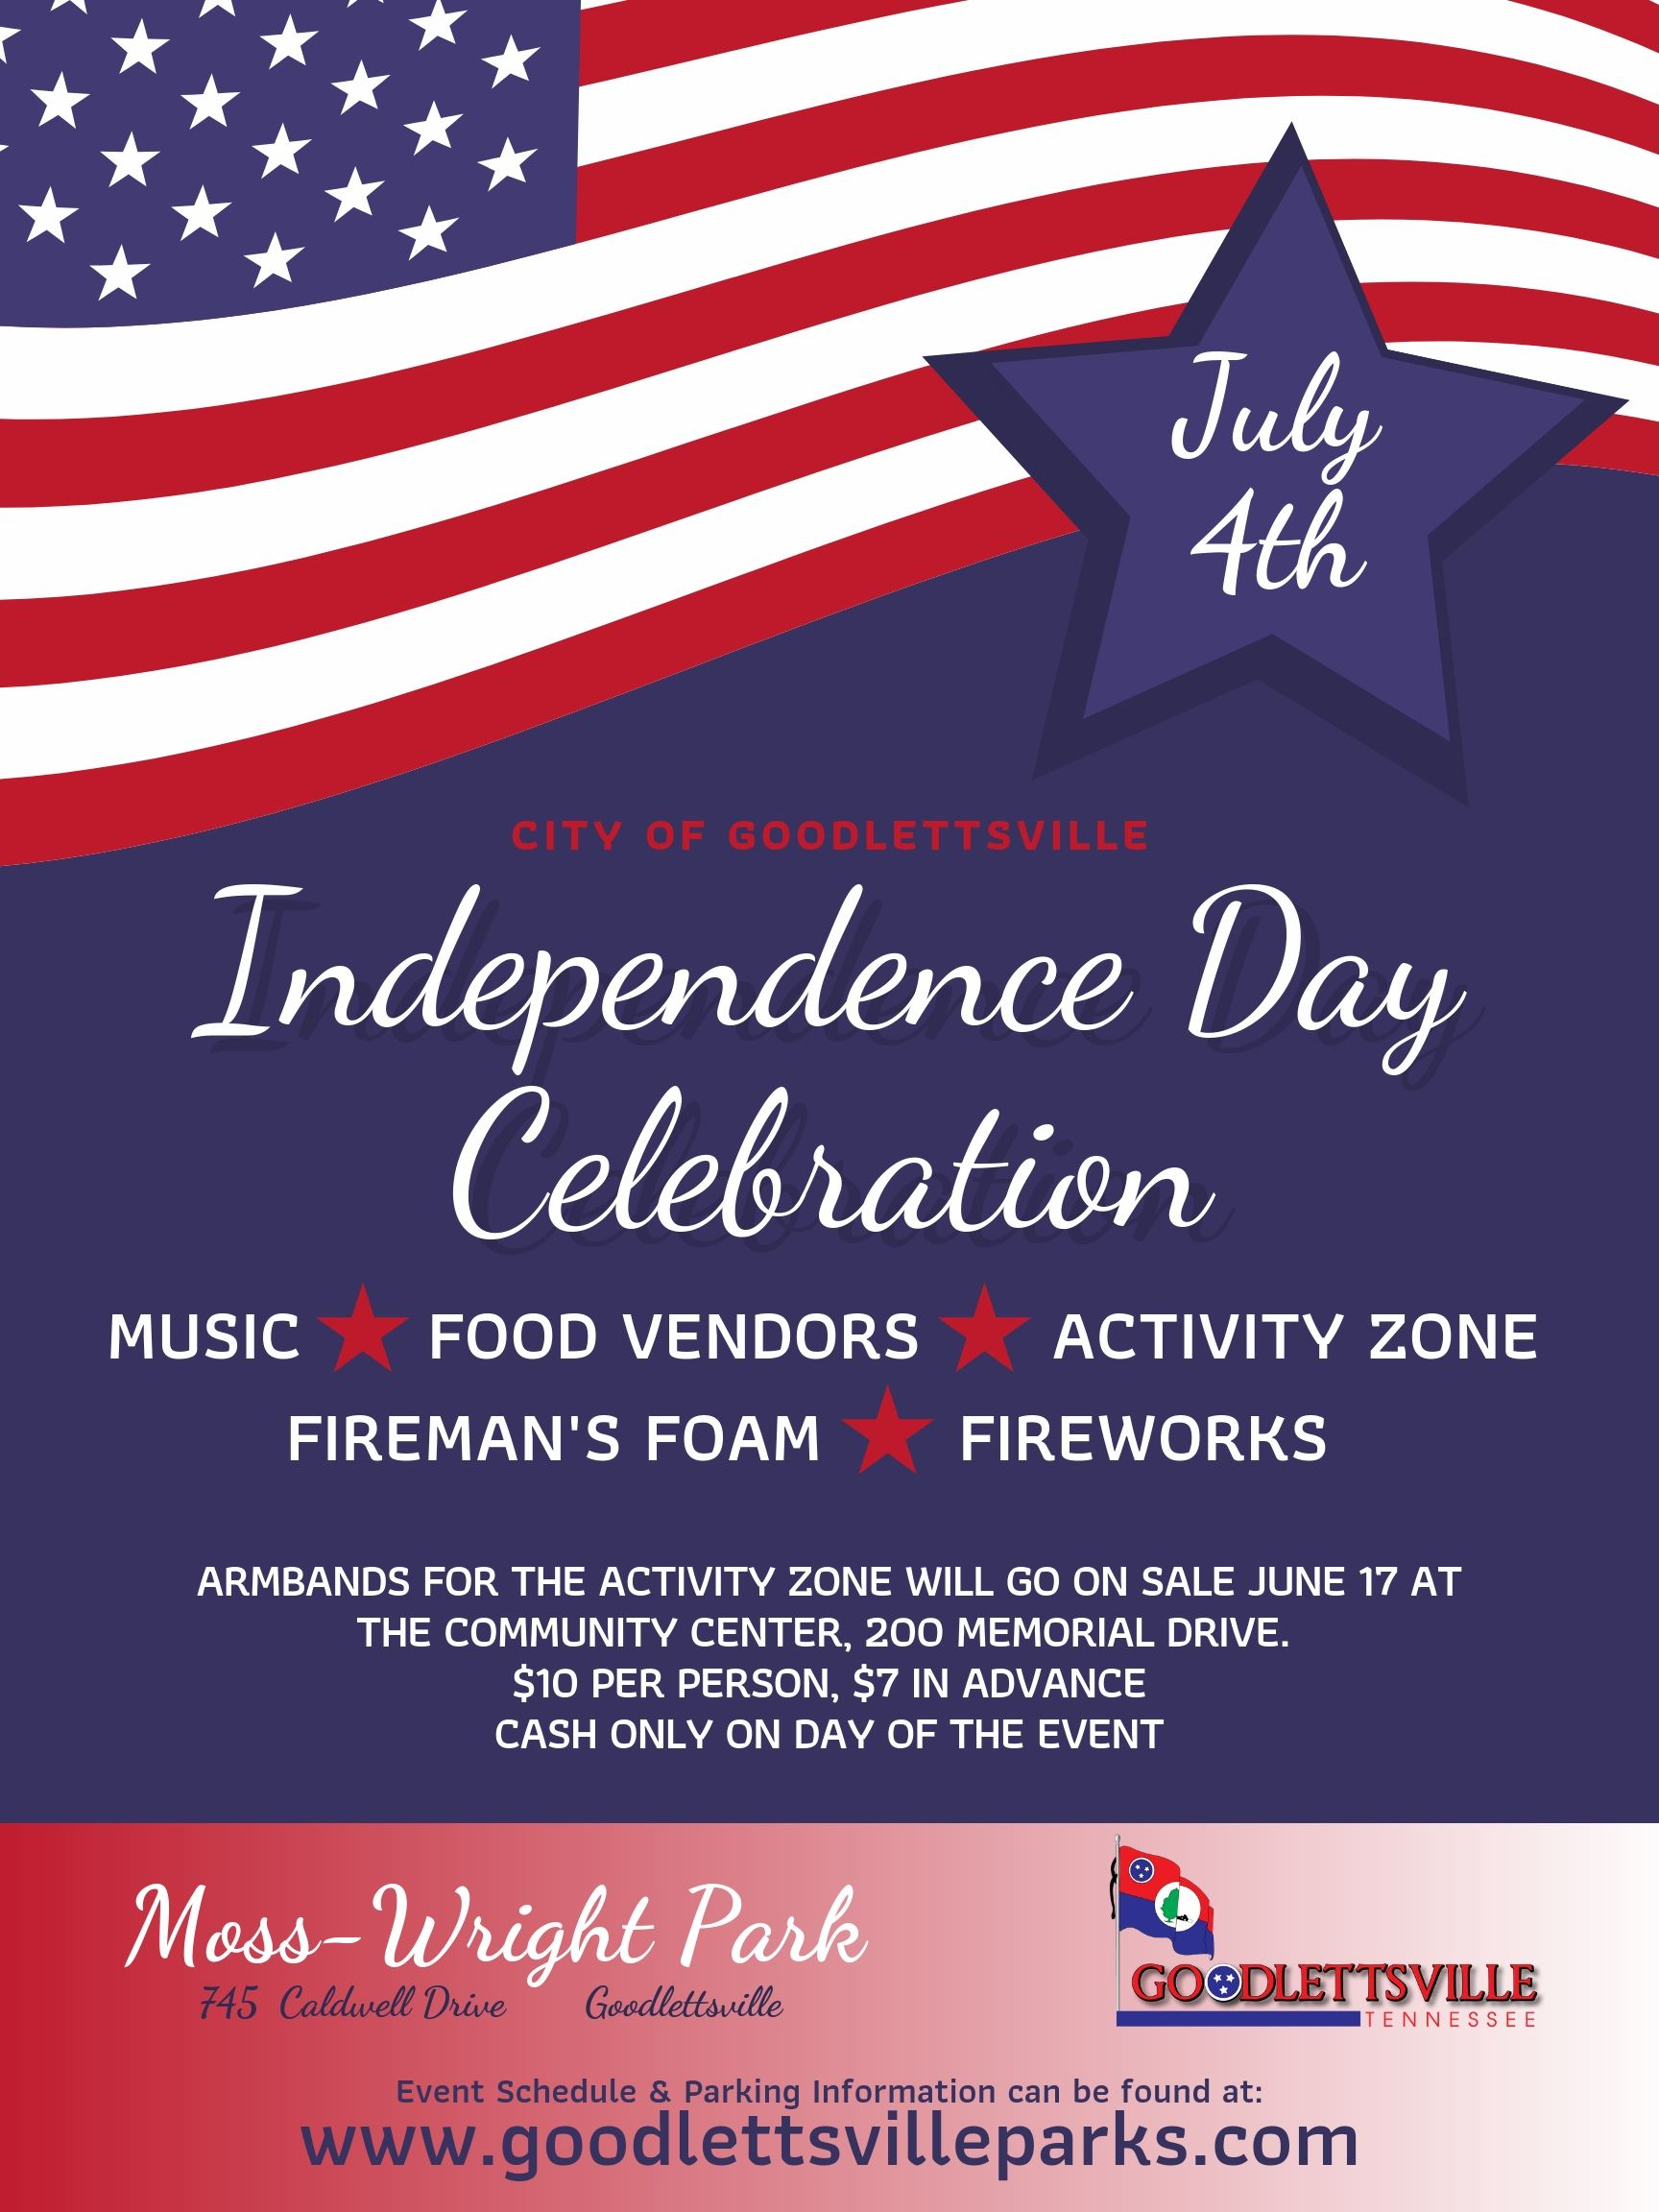 Independence Day Flyer 2019